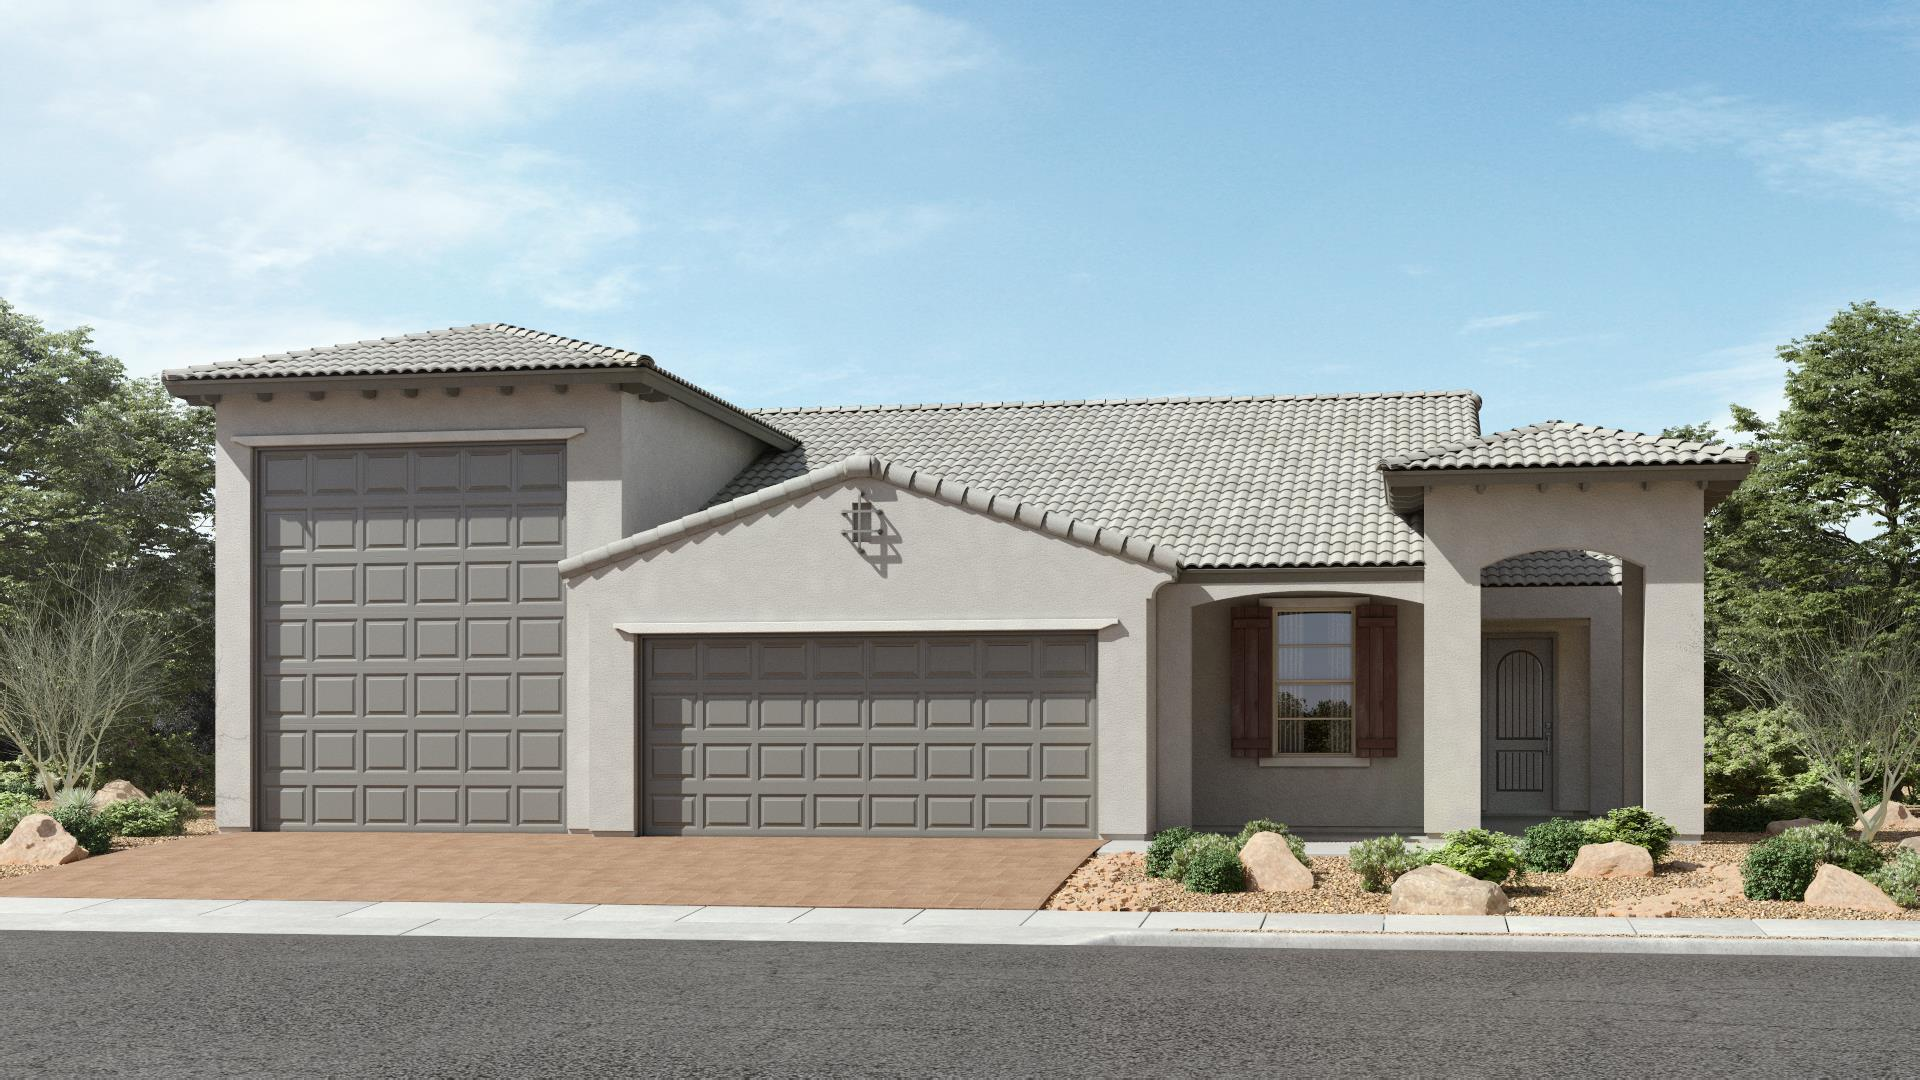 Exterior featured in The Pearl | Plan 52.1715RV By Brown Homes AZ in Prescott, AZ